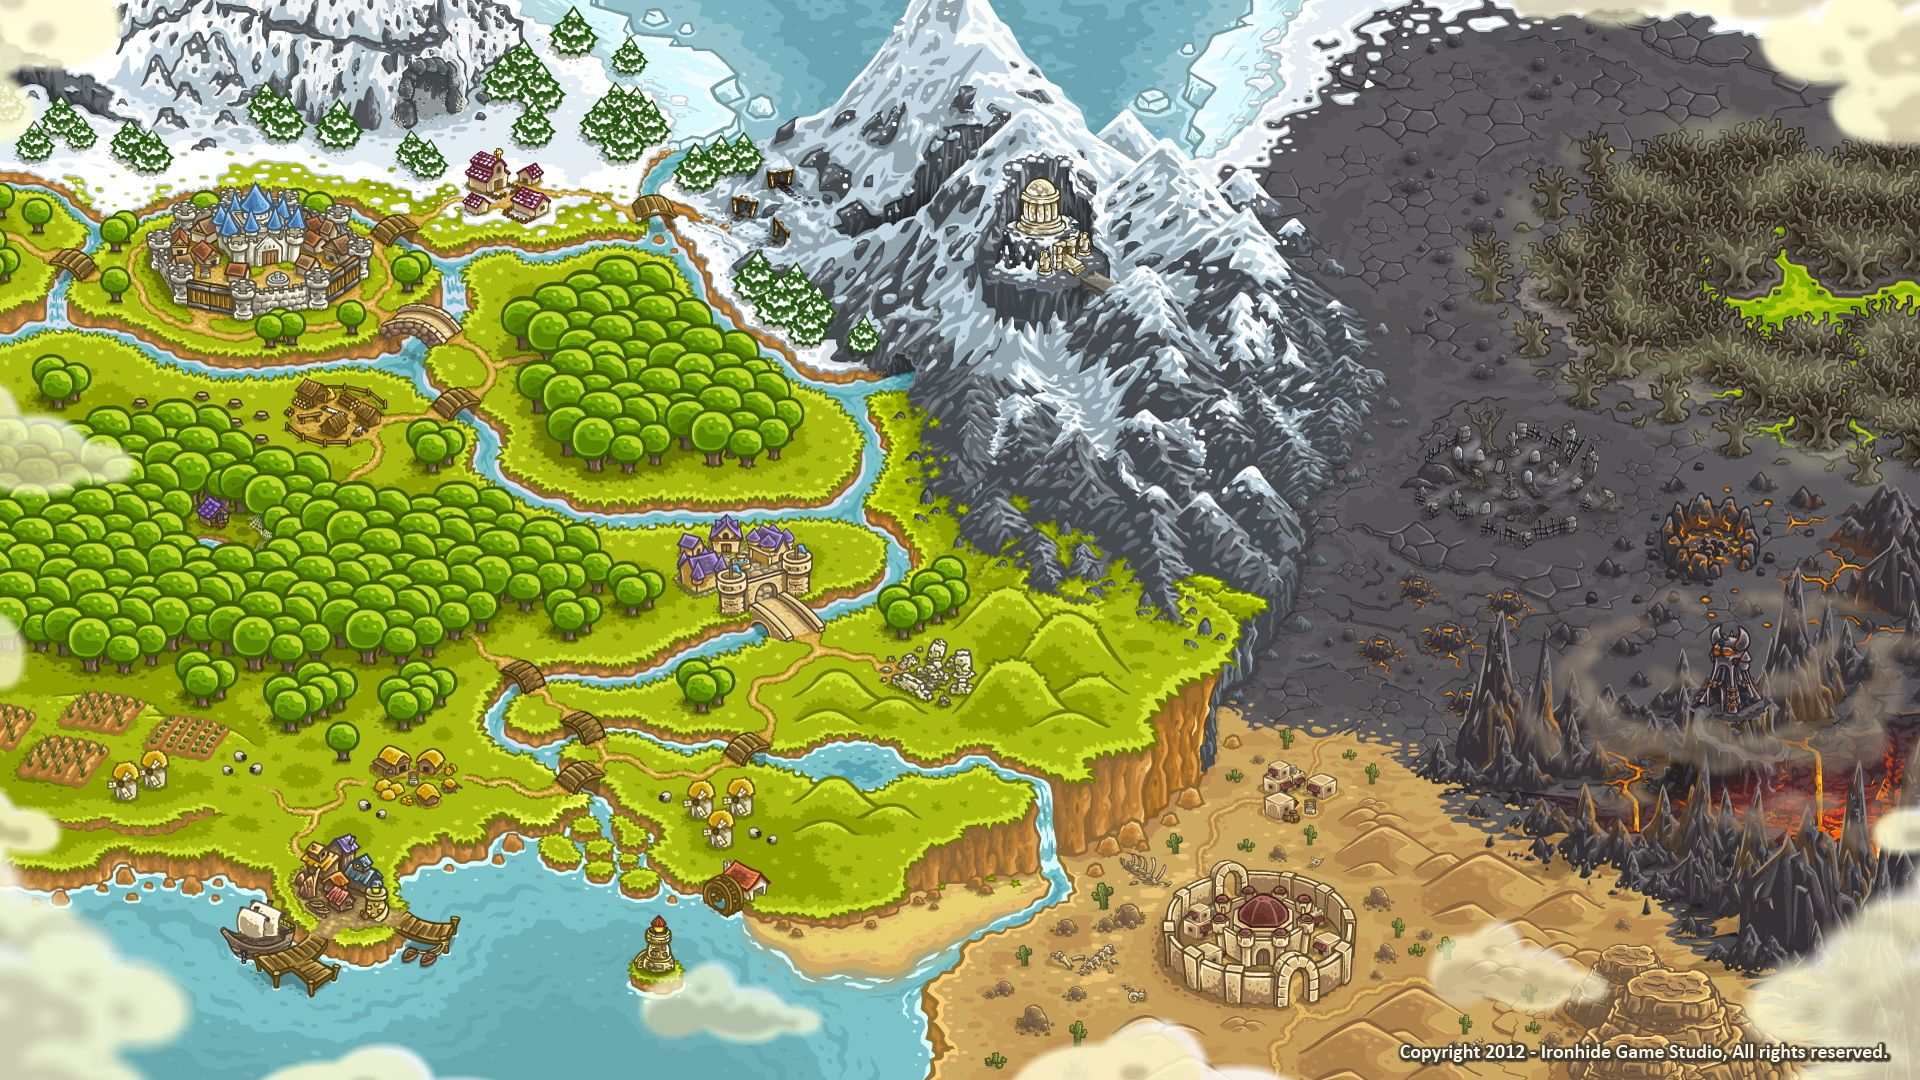 Kingdom rush frontiers review - Kingdom Rush 2 Frontiers 2 Screenshot 1 2